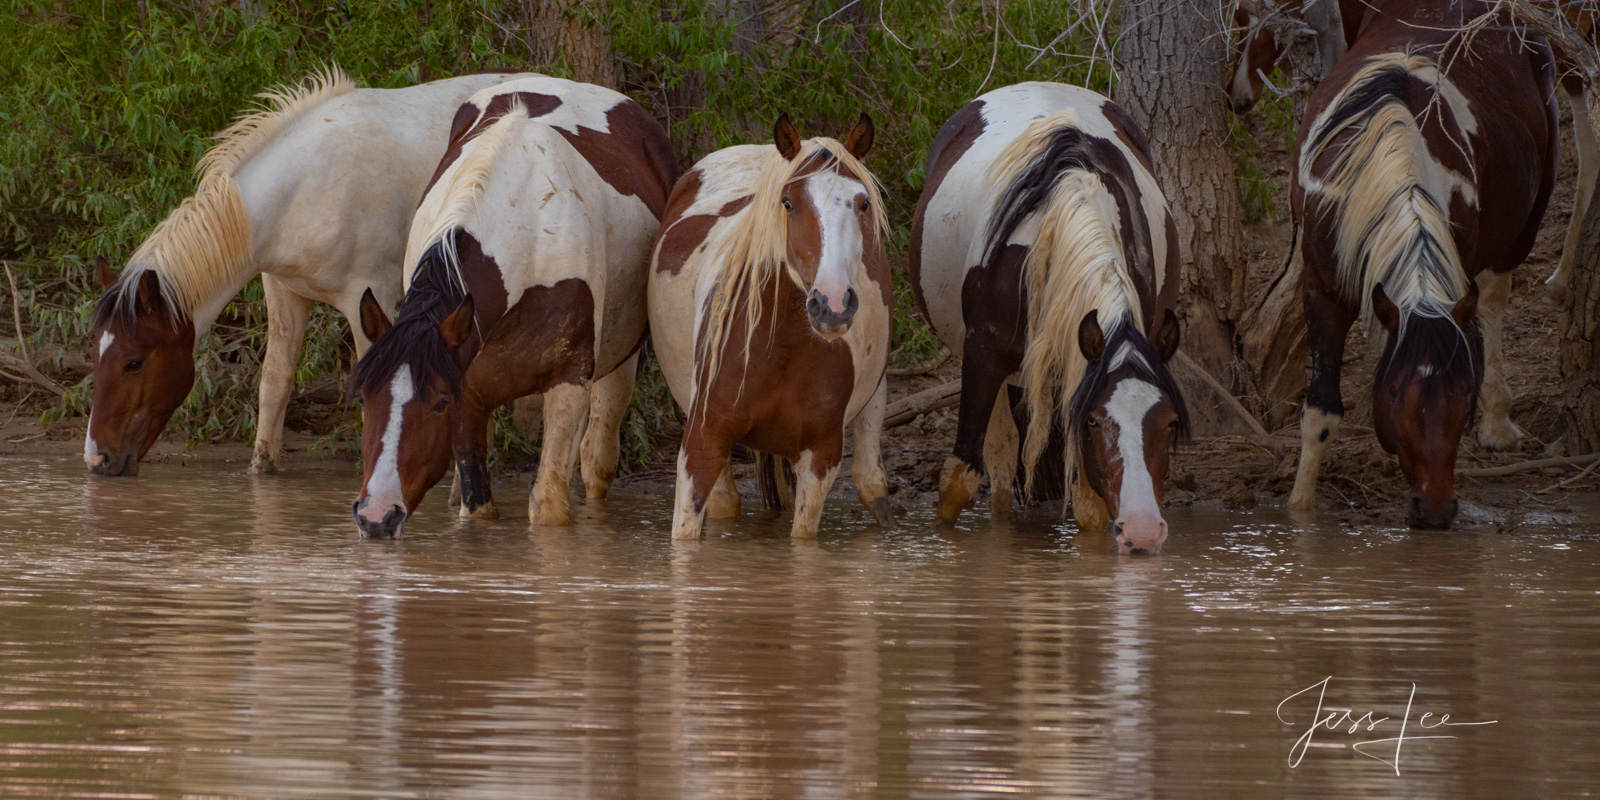 Spotted Mustangs at the waterhole, a fine art limited edition  of 200 prints